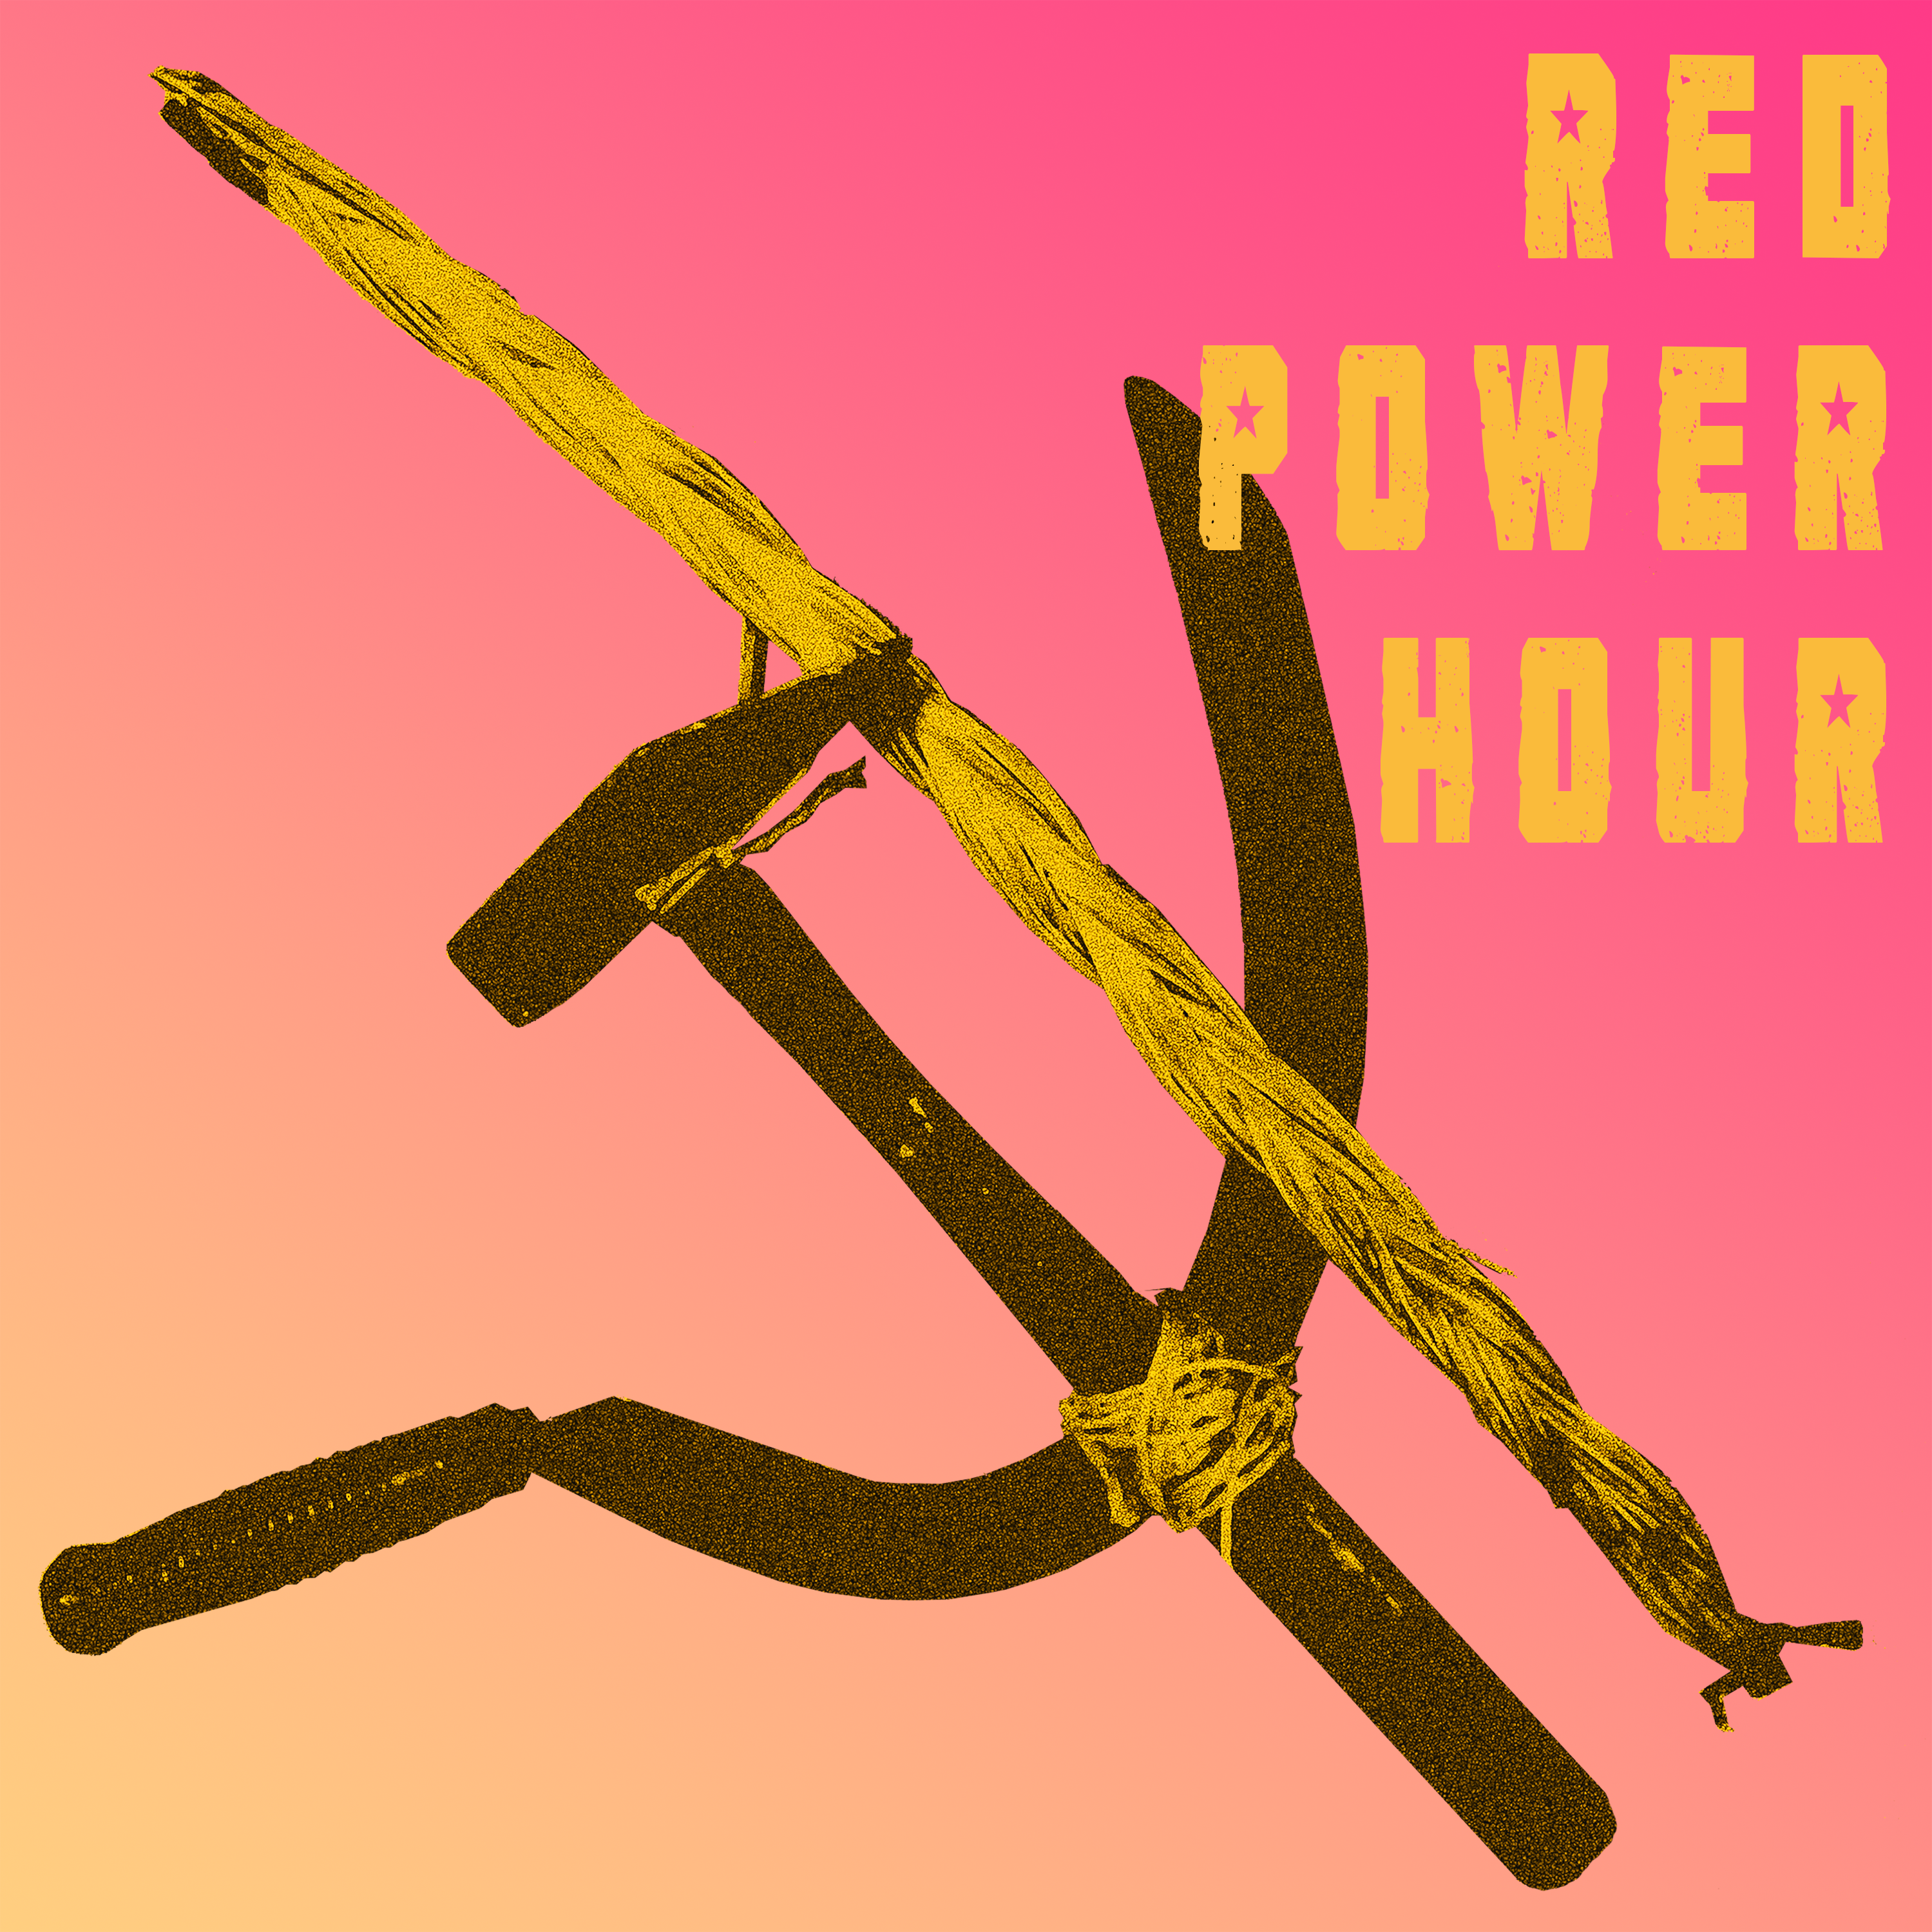 Red Power Hour show art